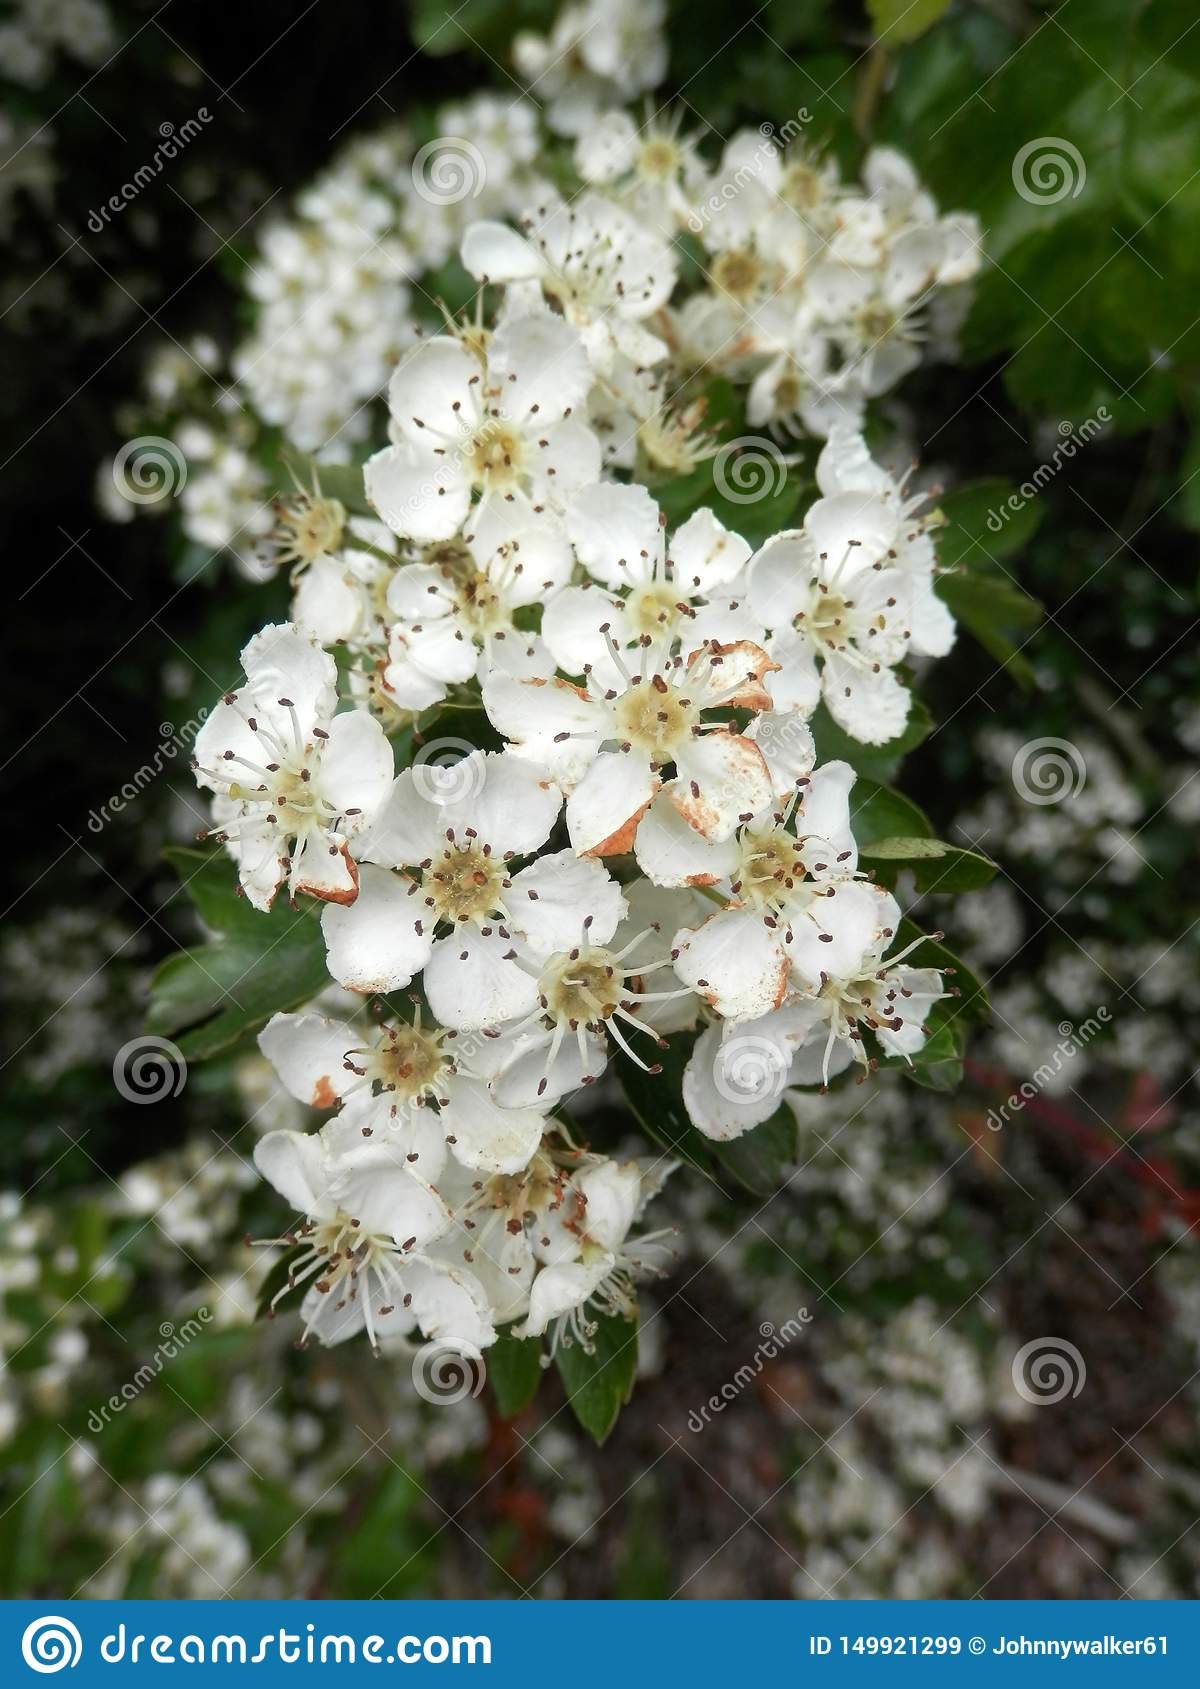 Closeup of white hawthorn flower